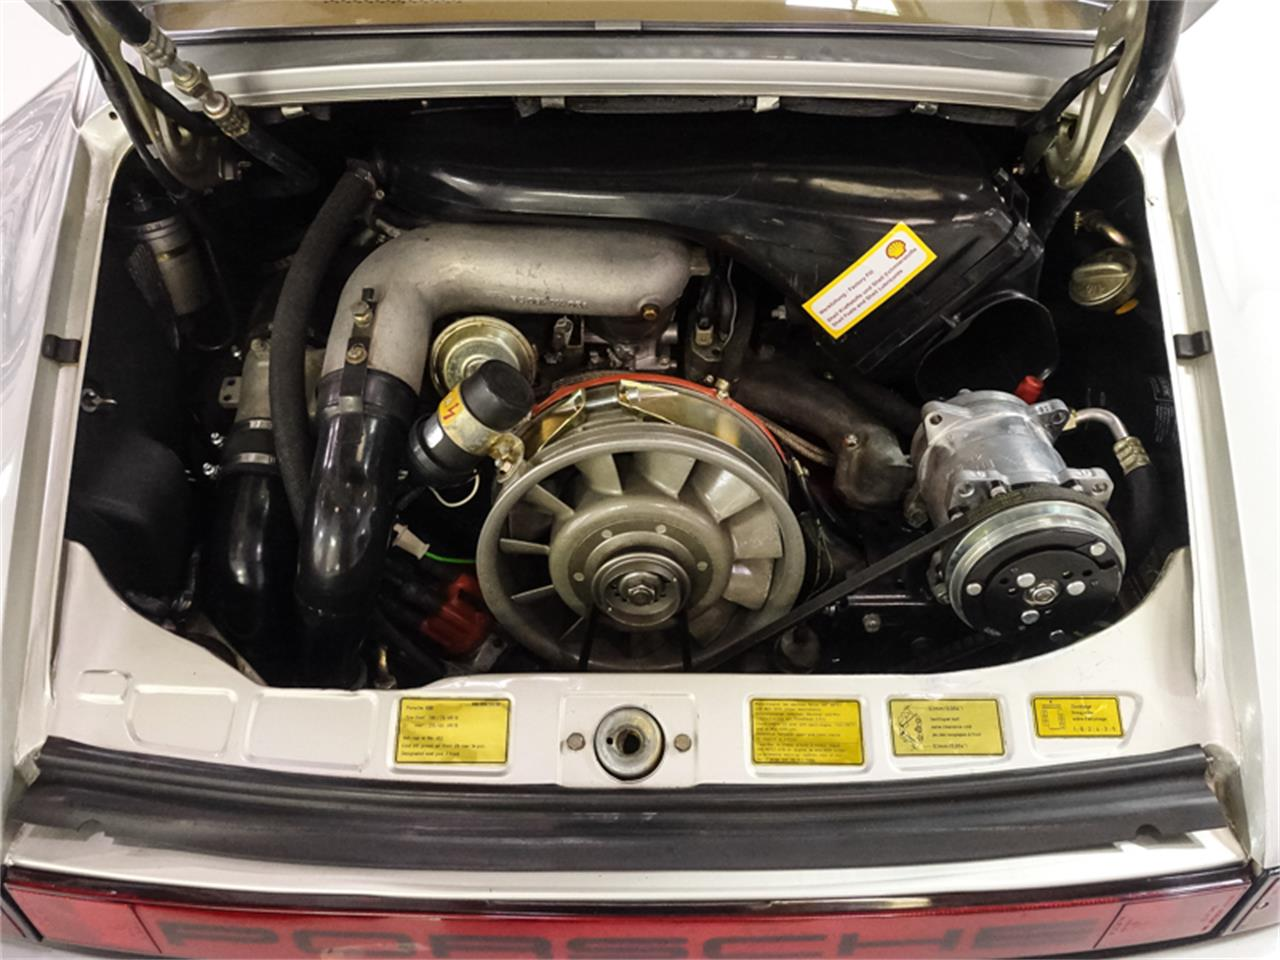 Large Picture of 1976 Porsche 930 Turbo located in Missouri - $229,900.00 - FXKC